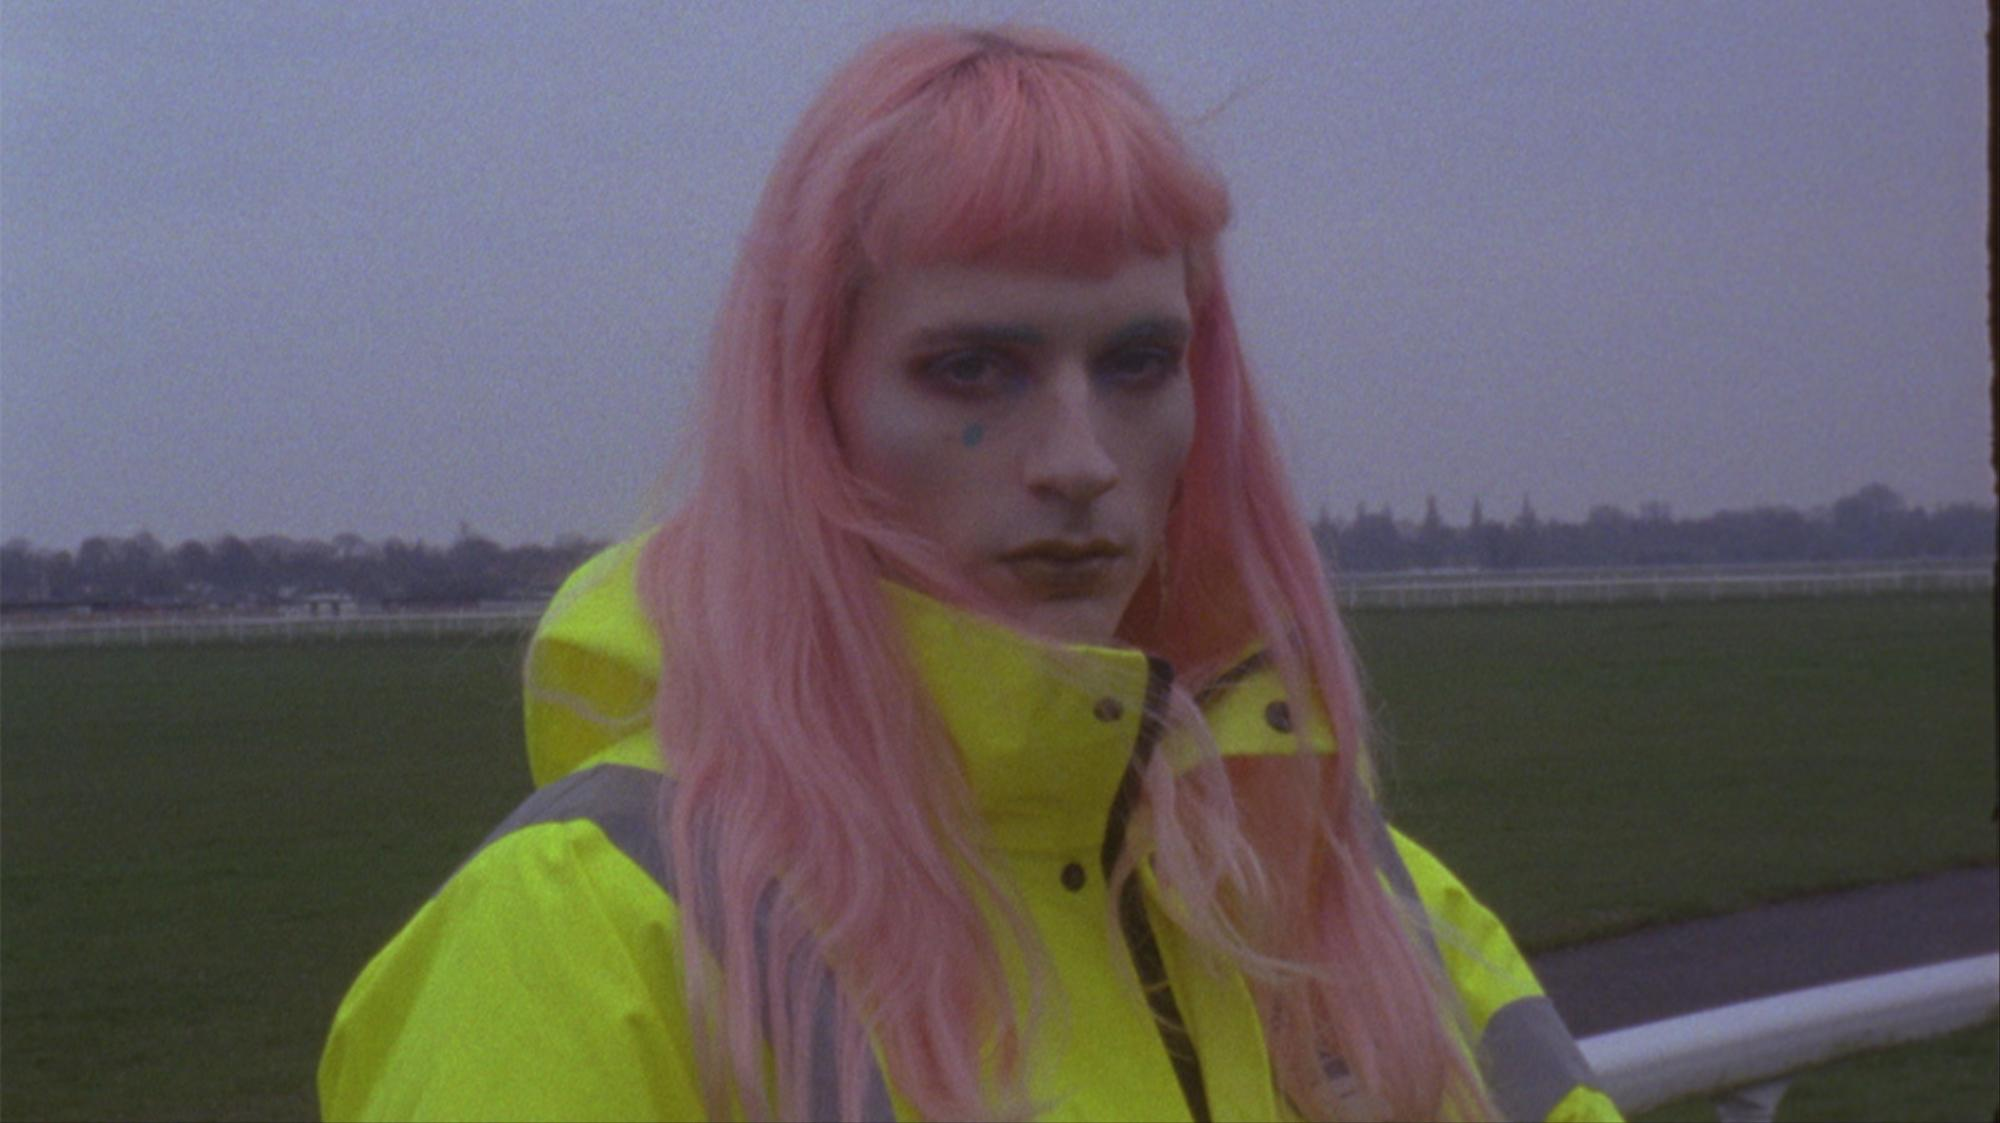 i-D meets matty bovan, the rainbow-colored star of london's fashion scene